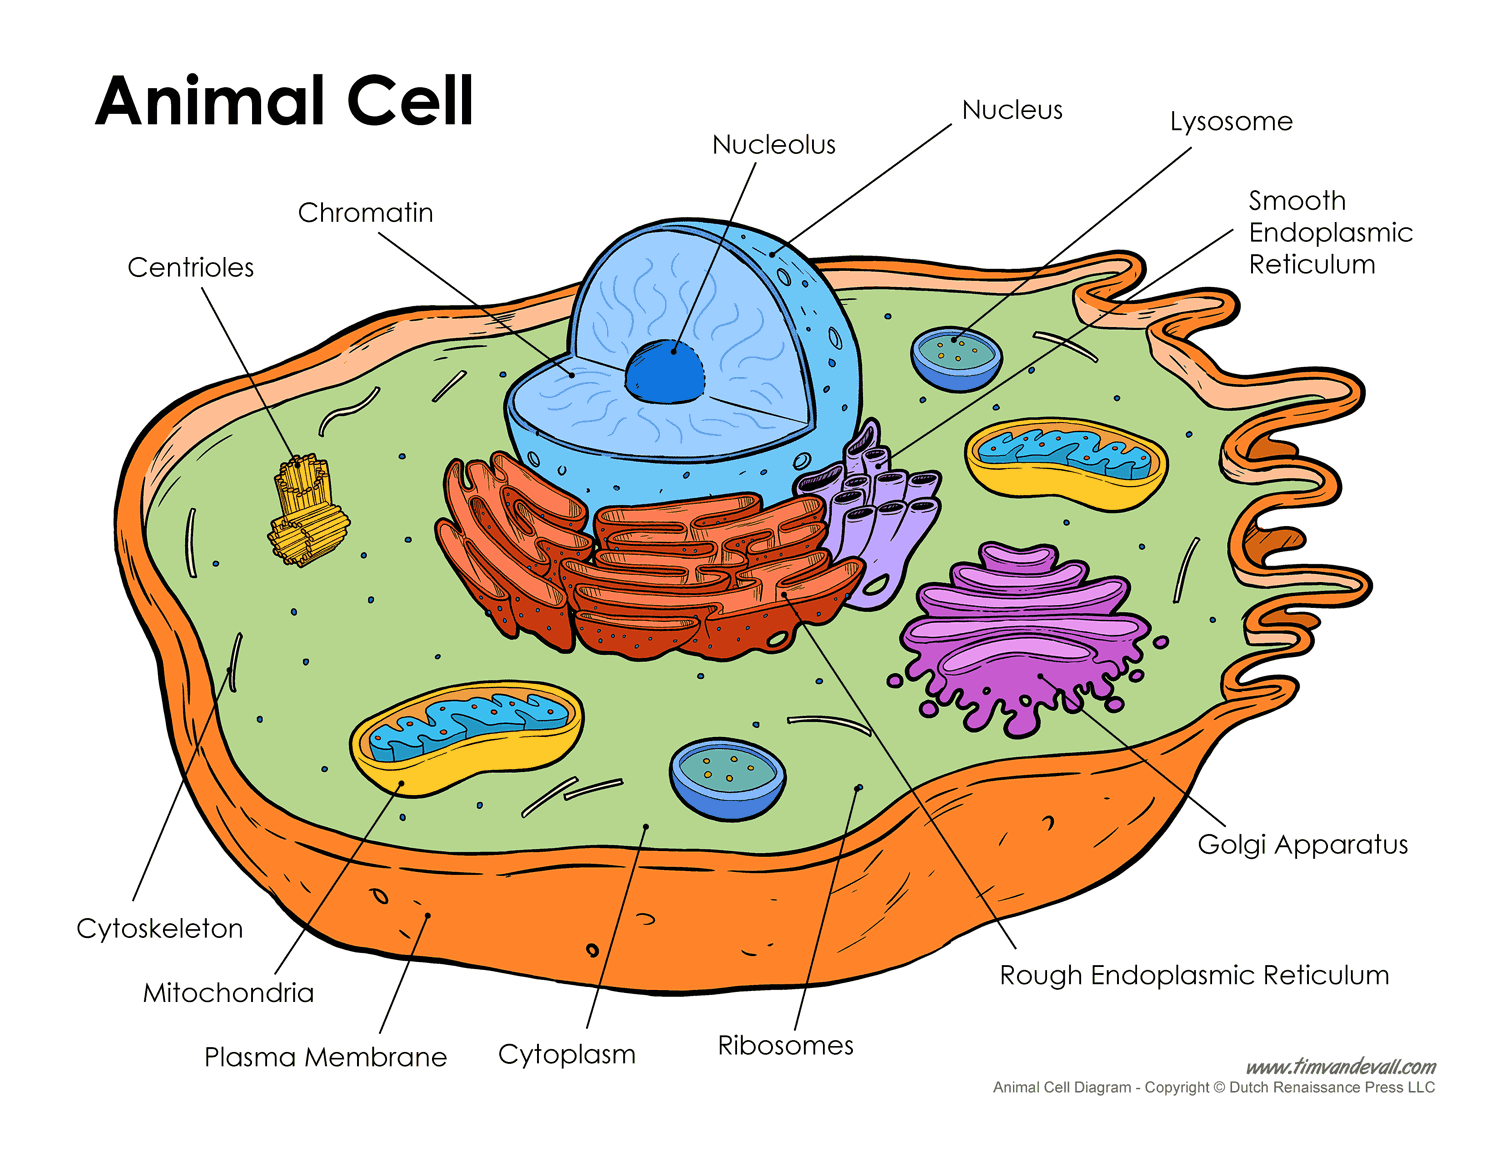 Cell clipart labelled. Printable labeled and unlabeled